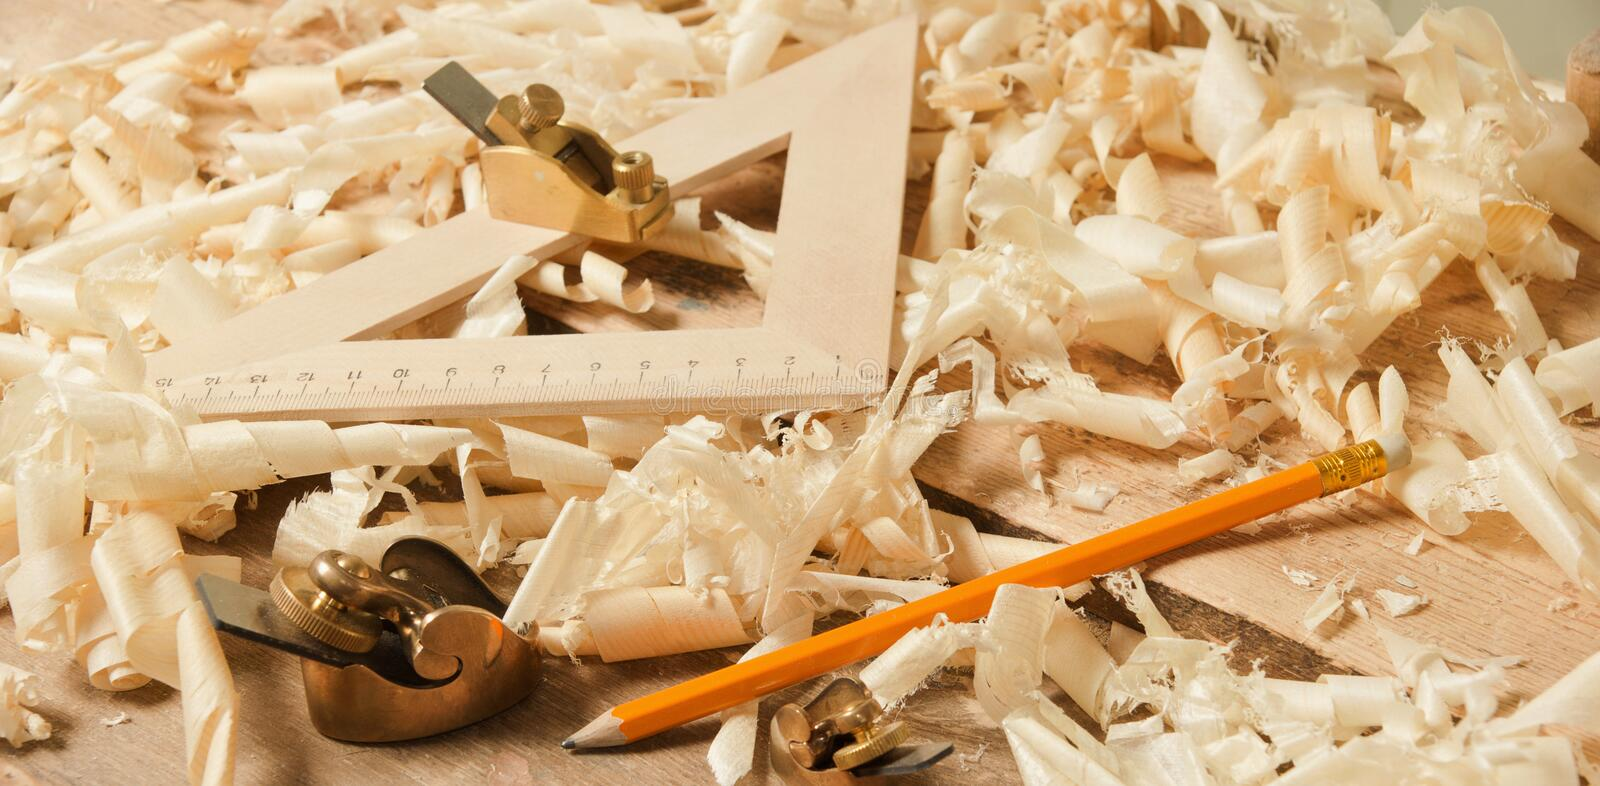 Download Gold Miniature Wood Planer On Wooden Plank Royalty Free Stock Photo - Image: 21854615